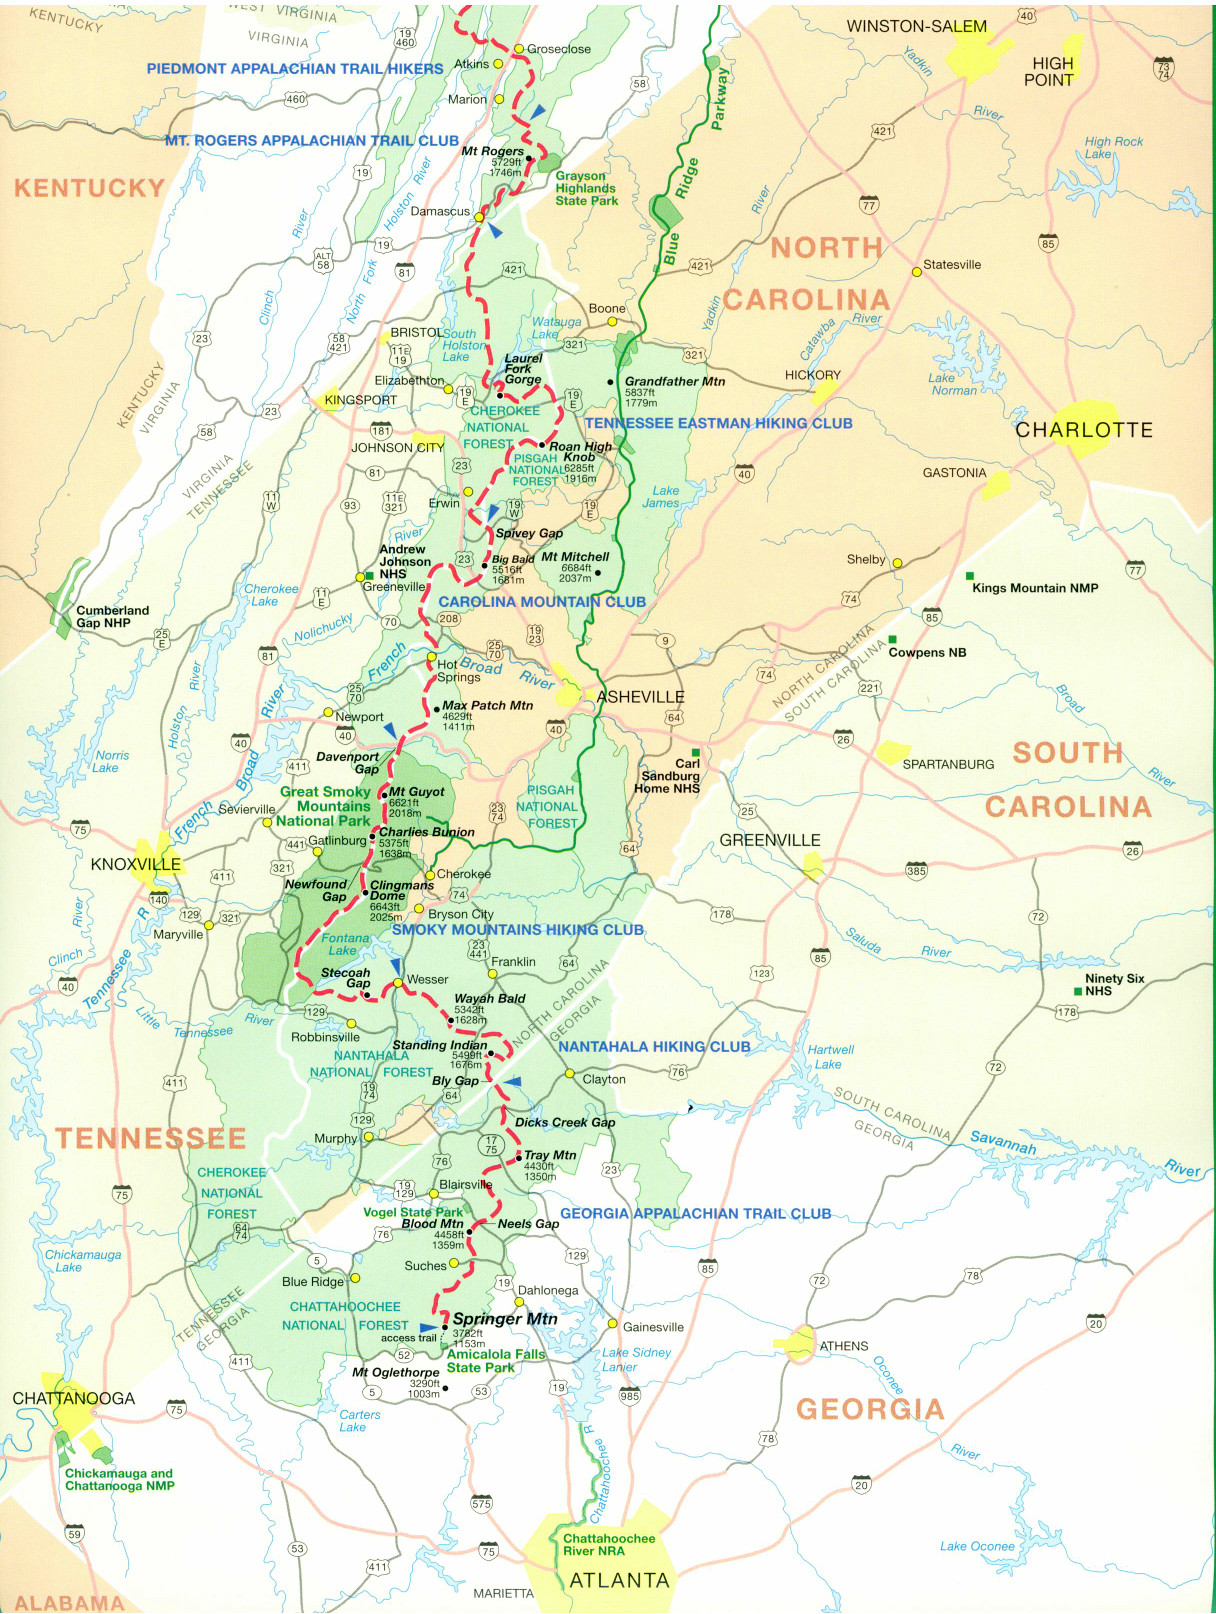 Official Appalachian Trail Maps - Appalachian trail new hampshire map